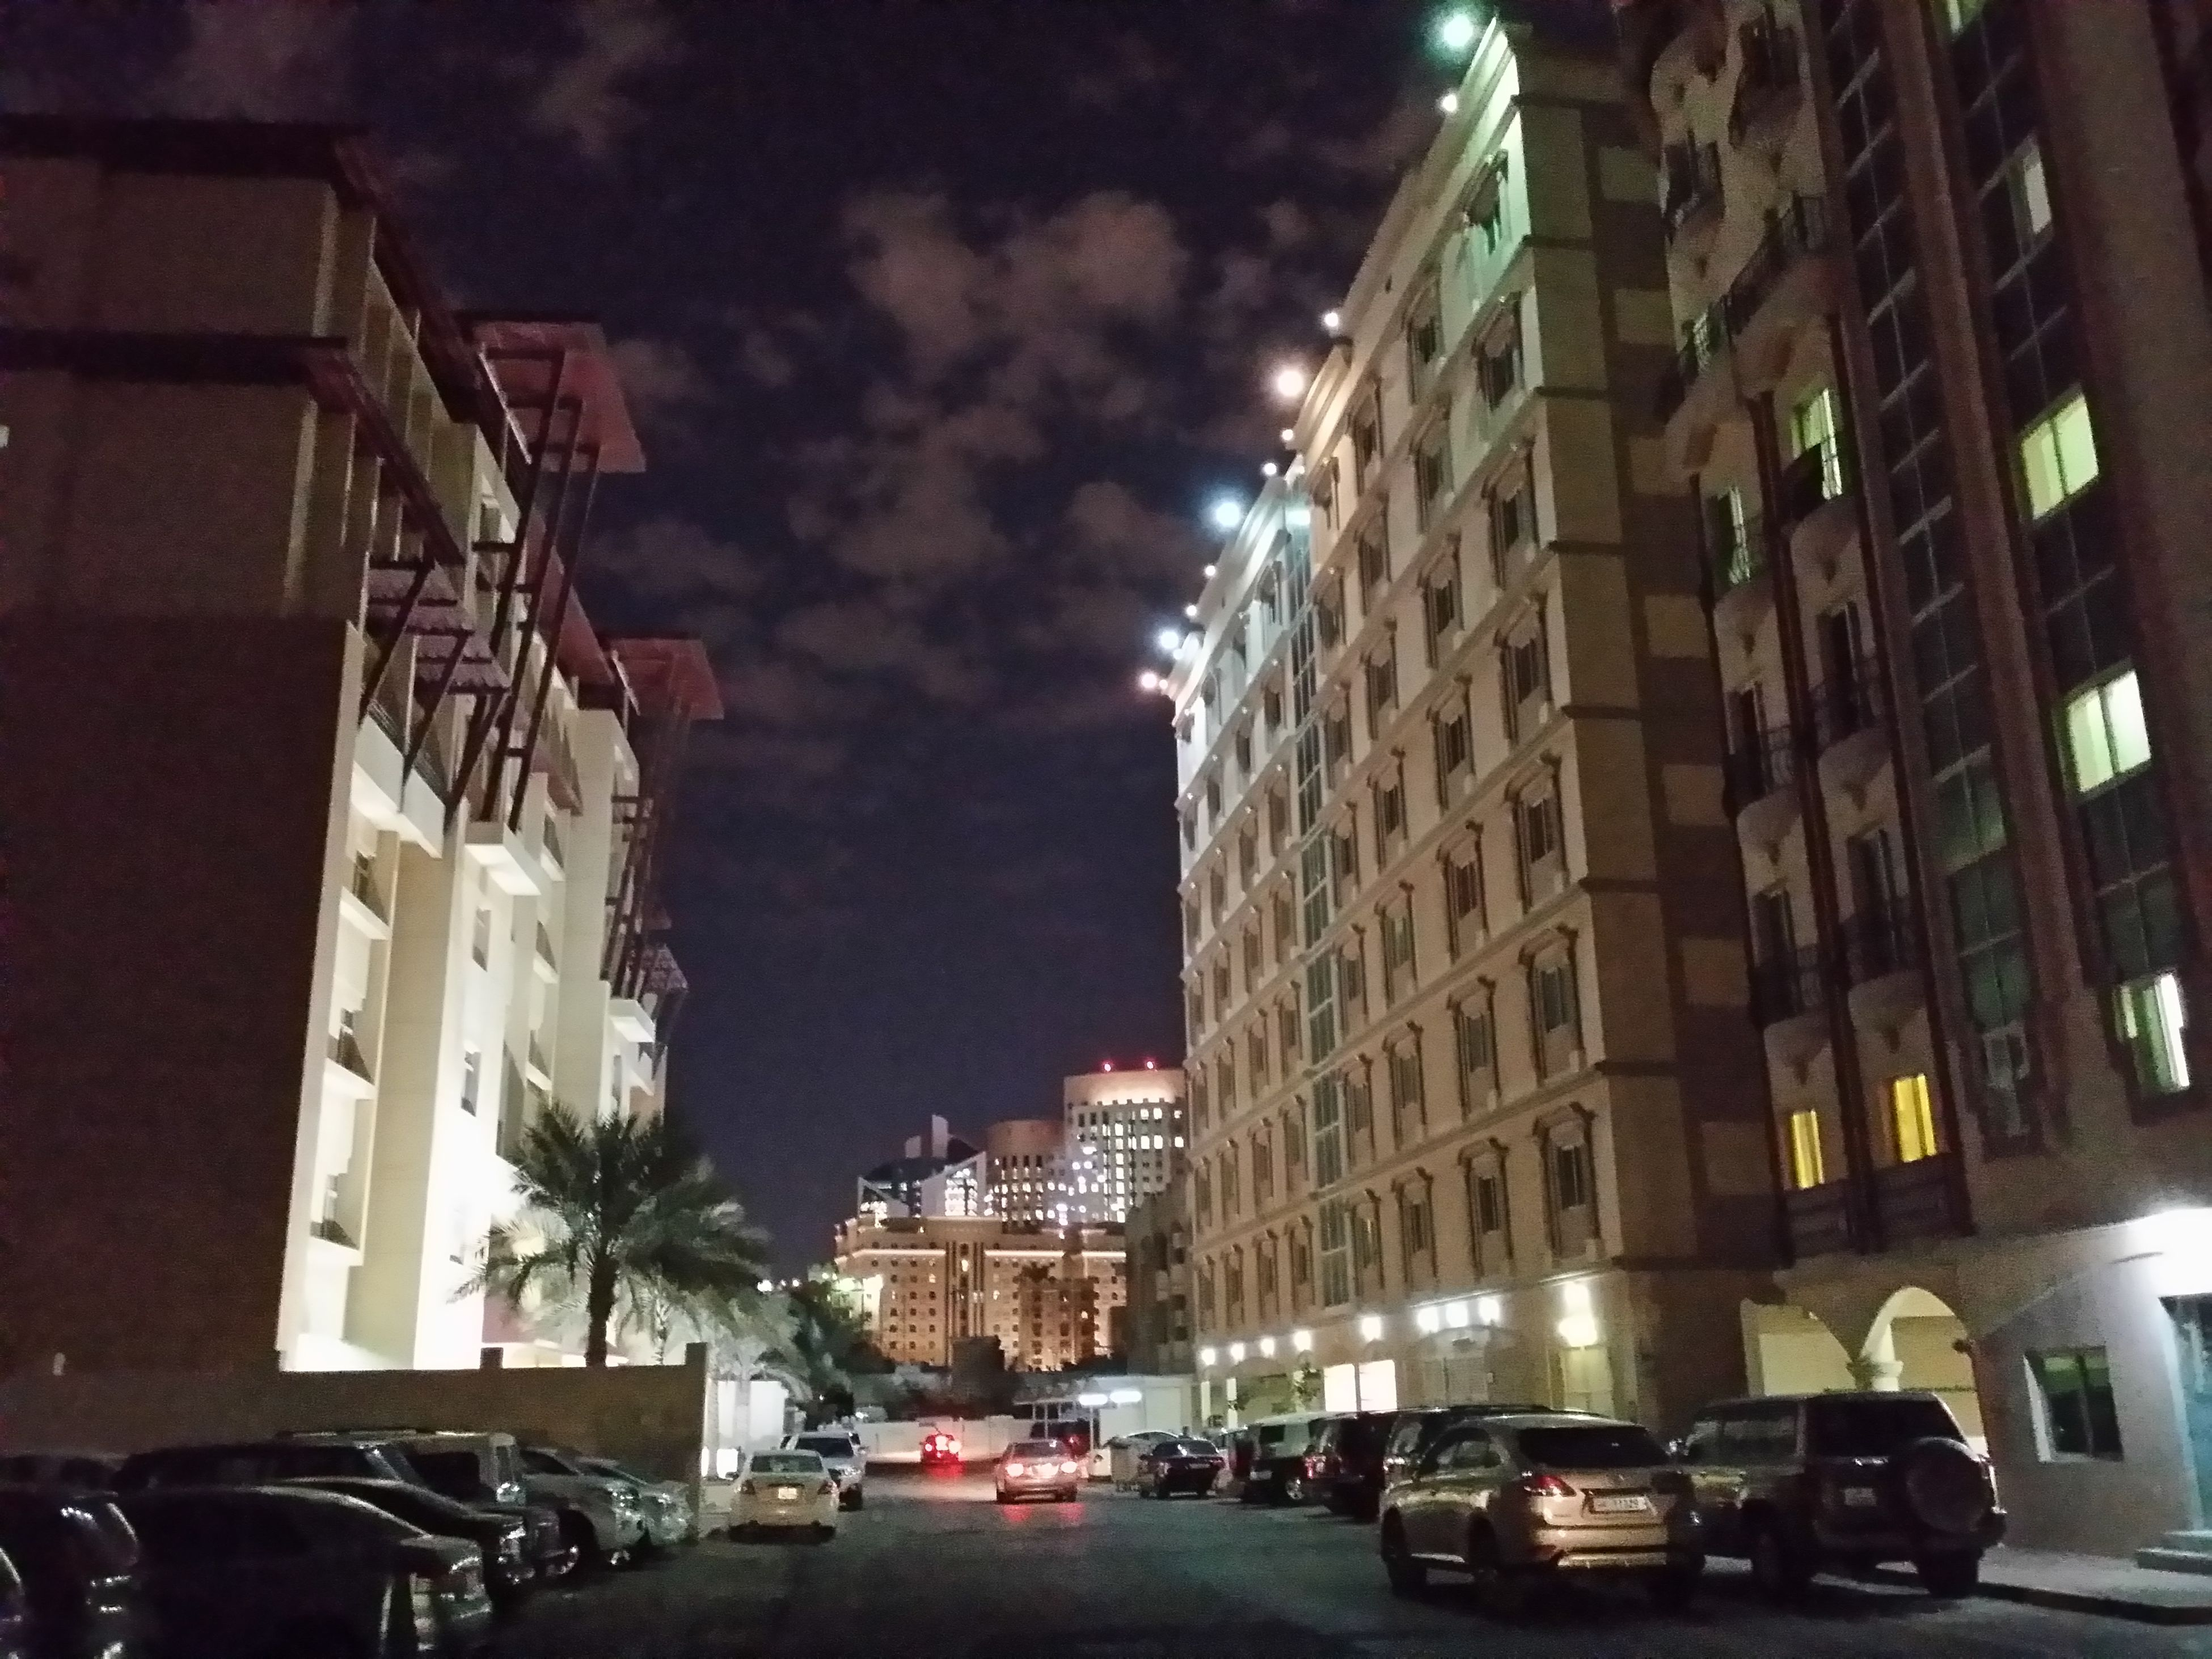 building exterior, car, architecture, land vehicle, transportation, built structure, mode of transport, street, city, sky, road, building, traffic, city street, illuminated, residential building, cloud - sky, parking, night, residential structure